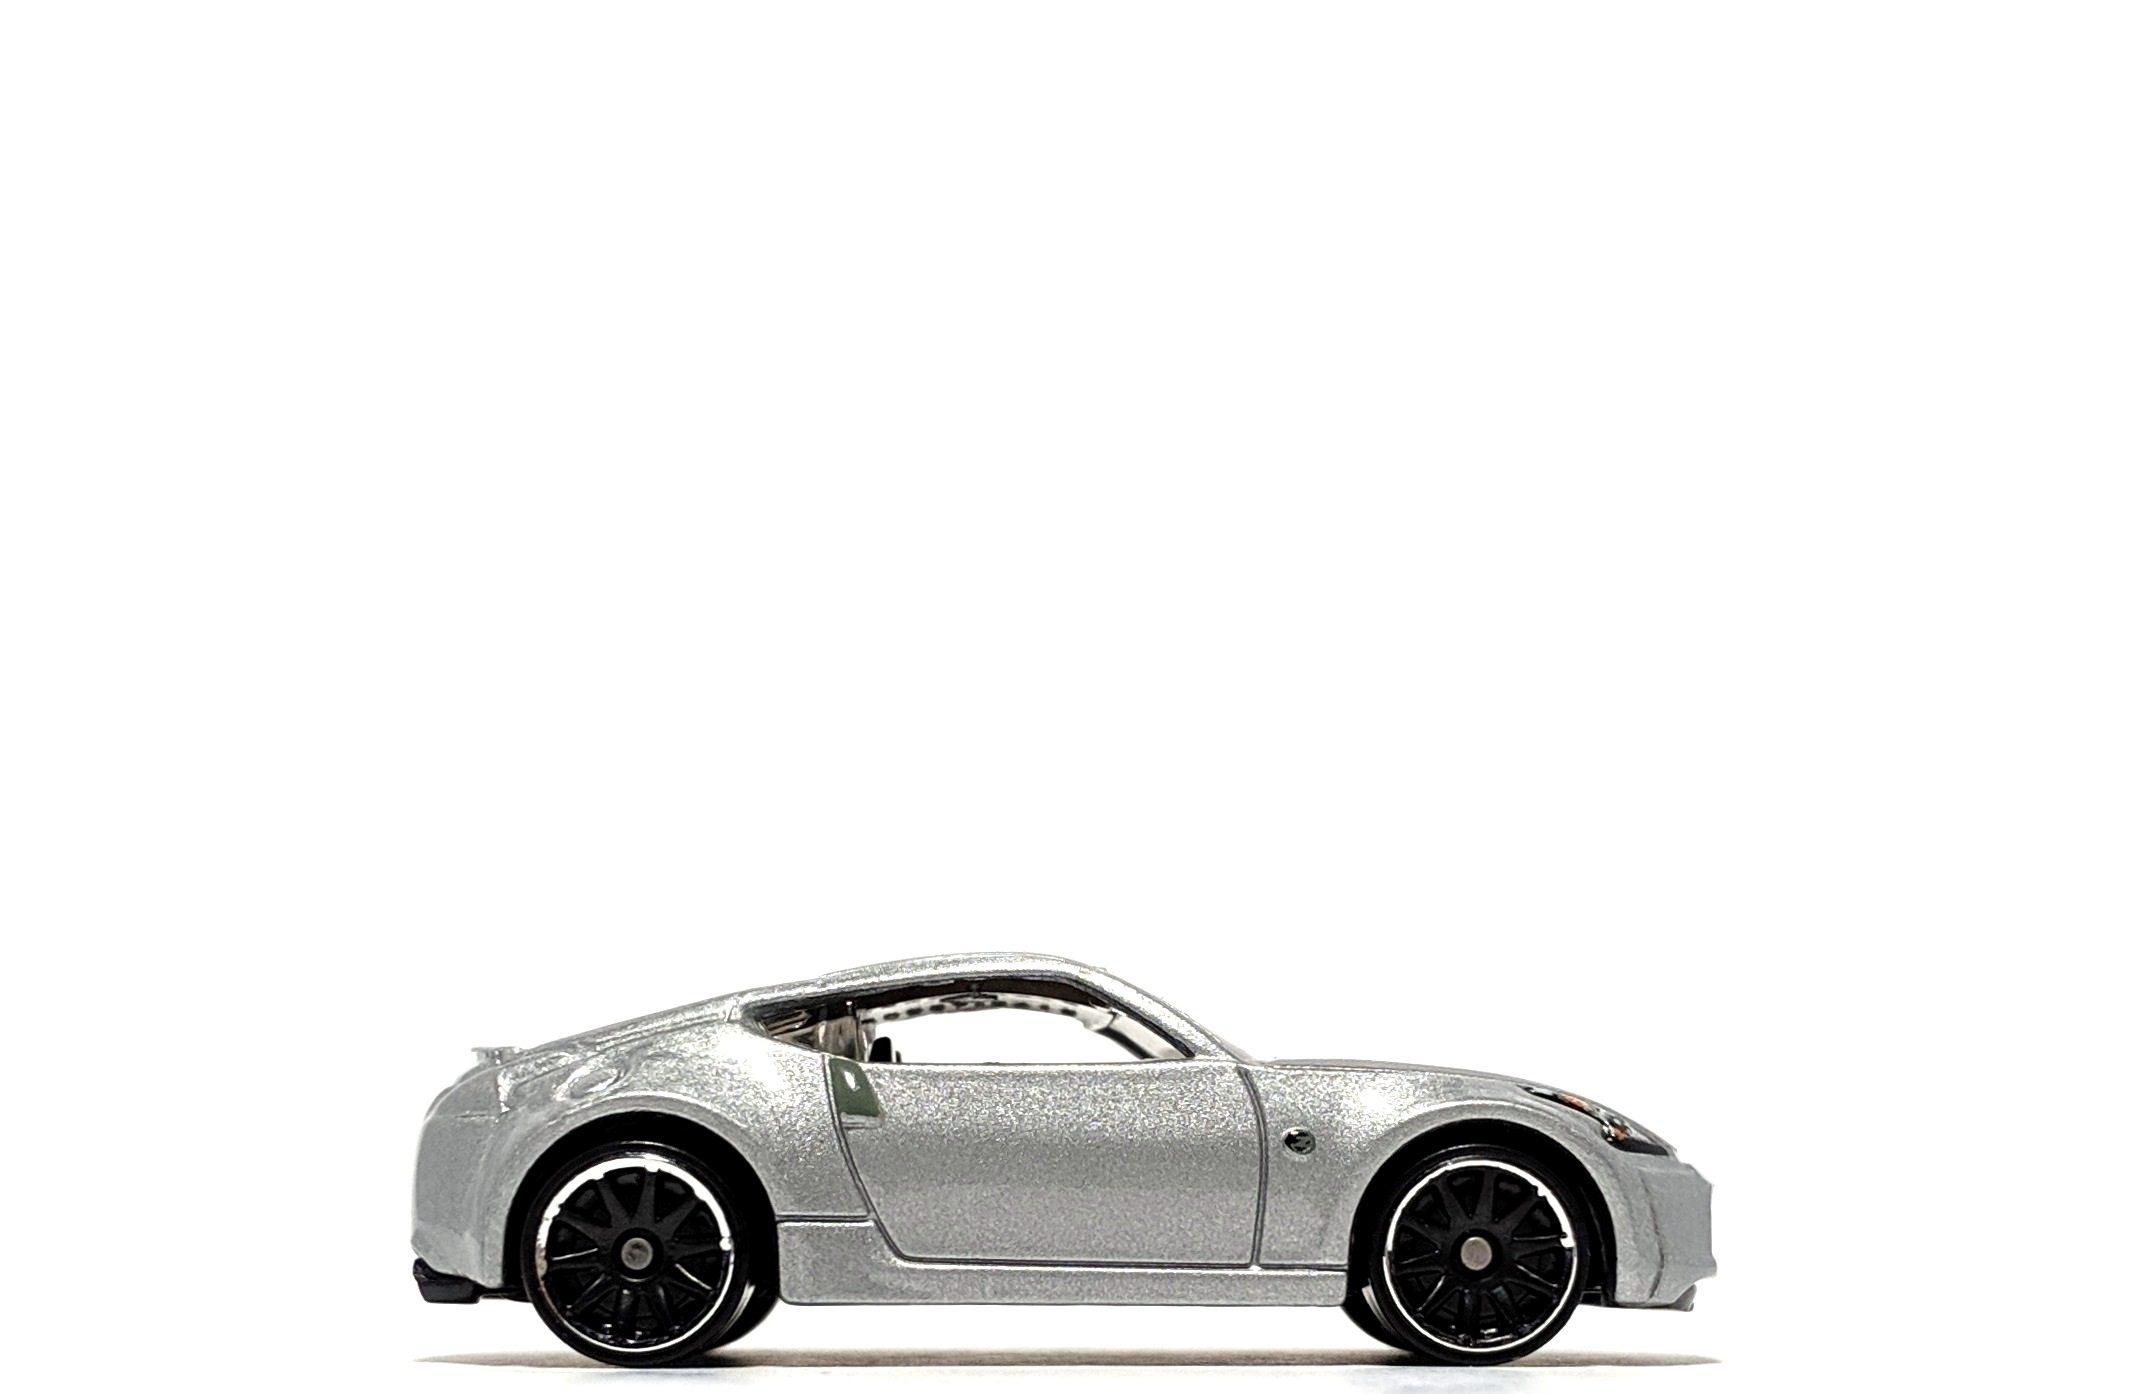 Nissan 370Z, by Hot Wheels (Fast & Furious)